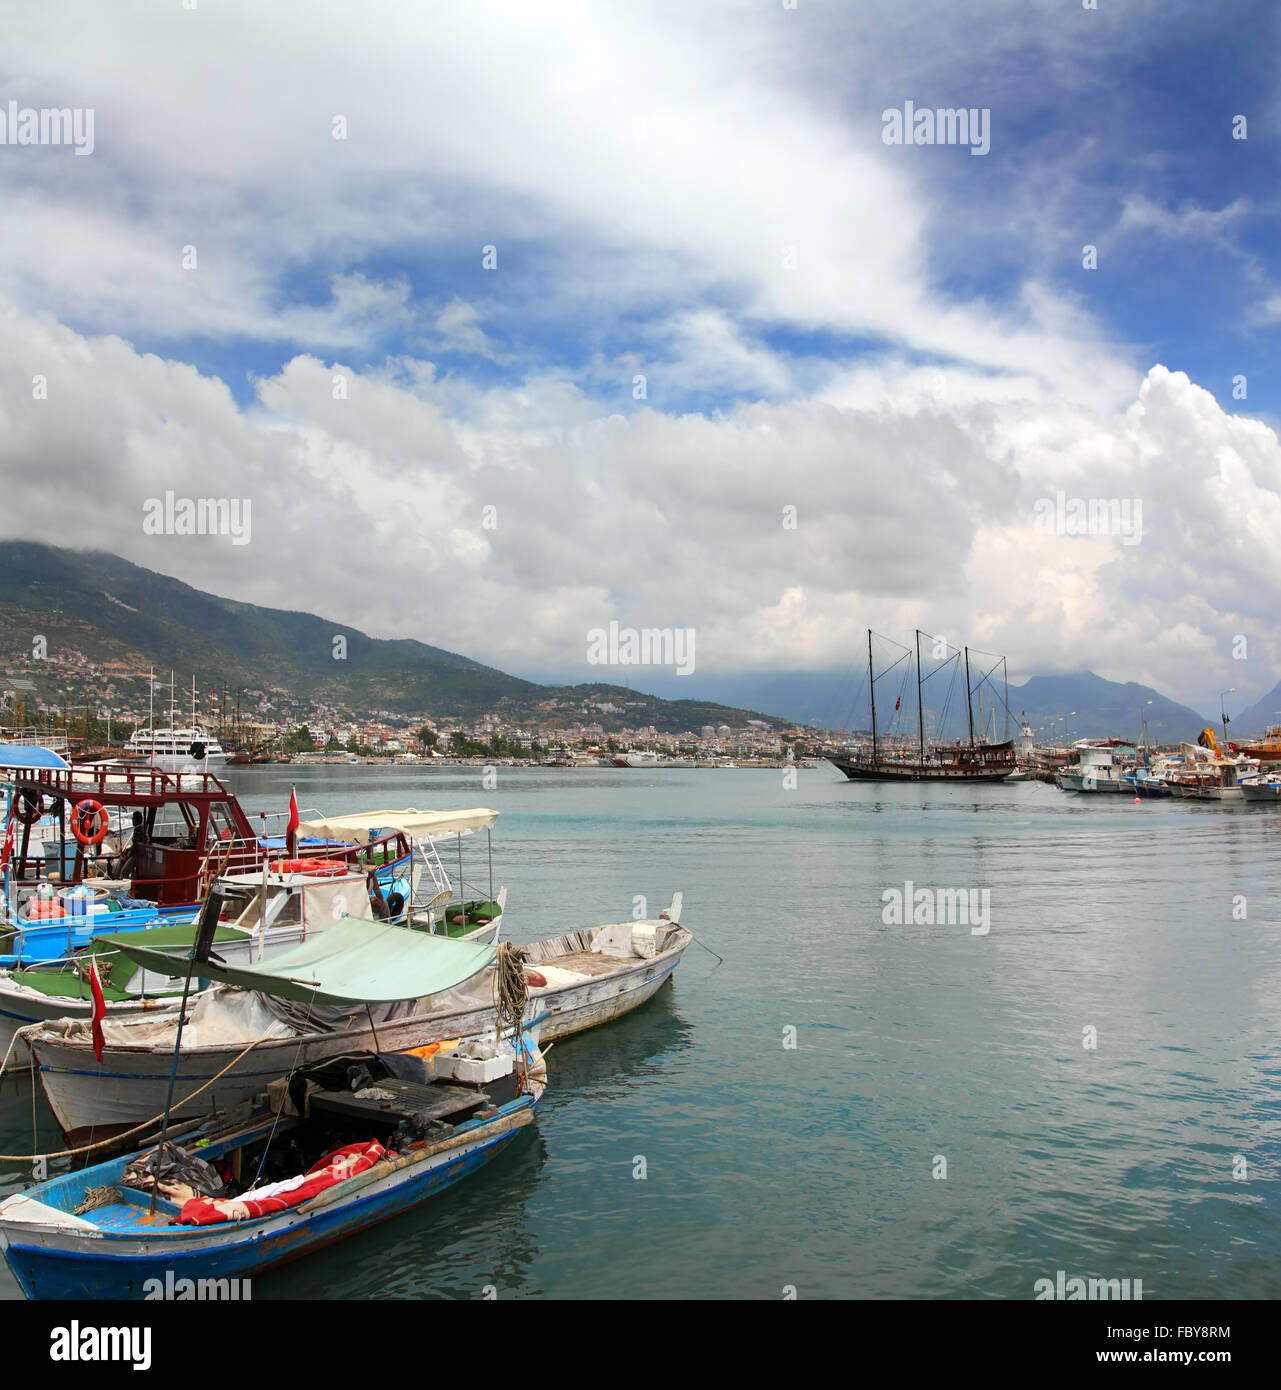 bay with boats in Alanya - Stock Image